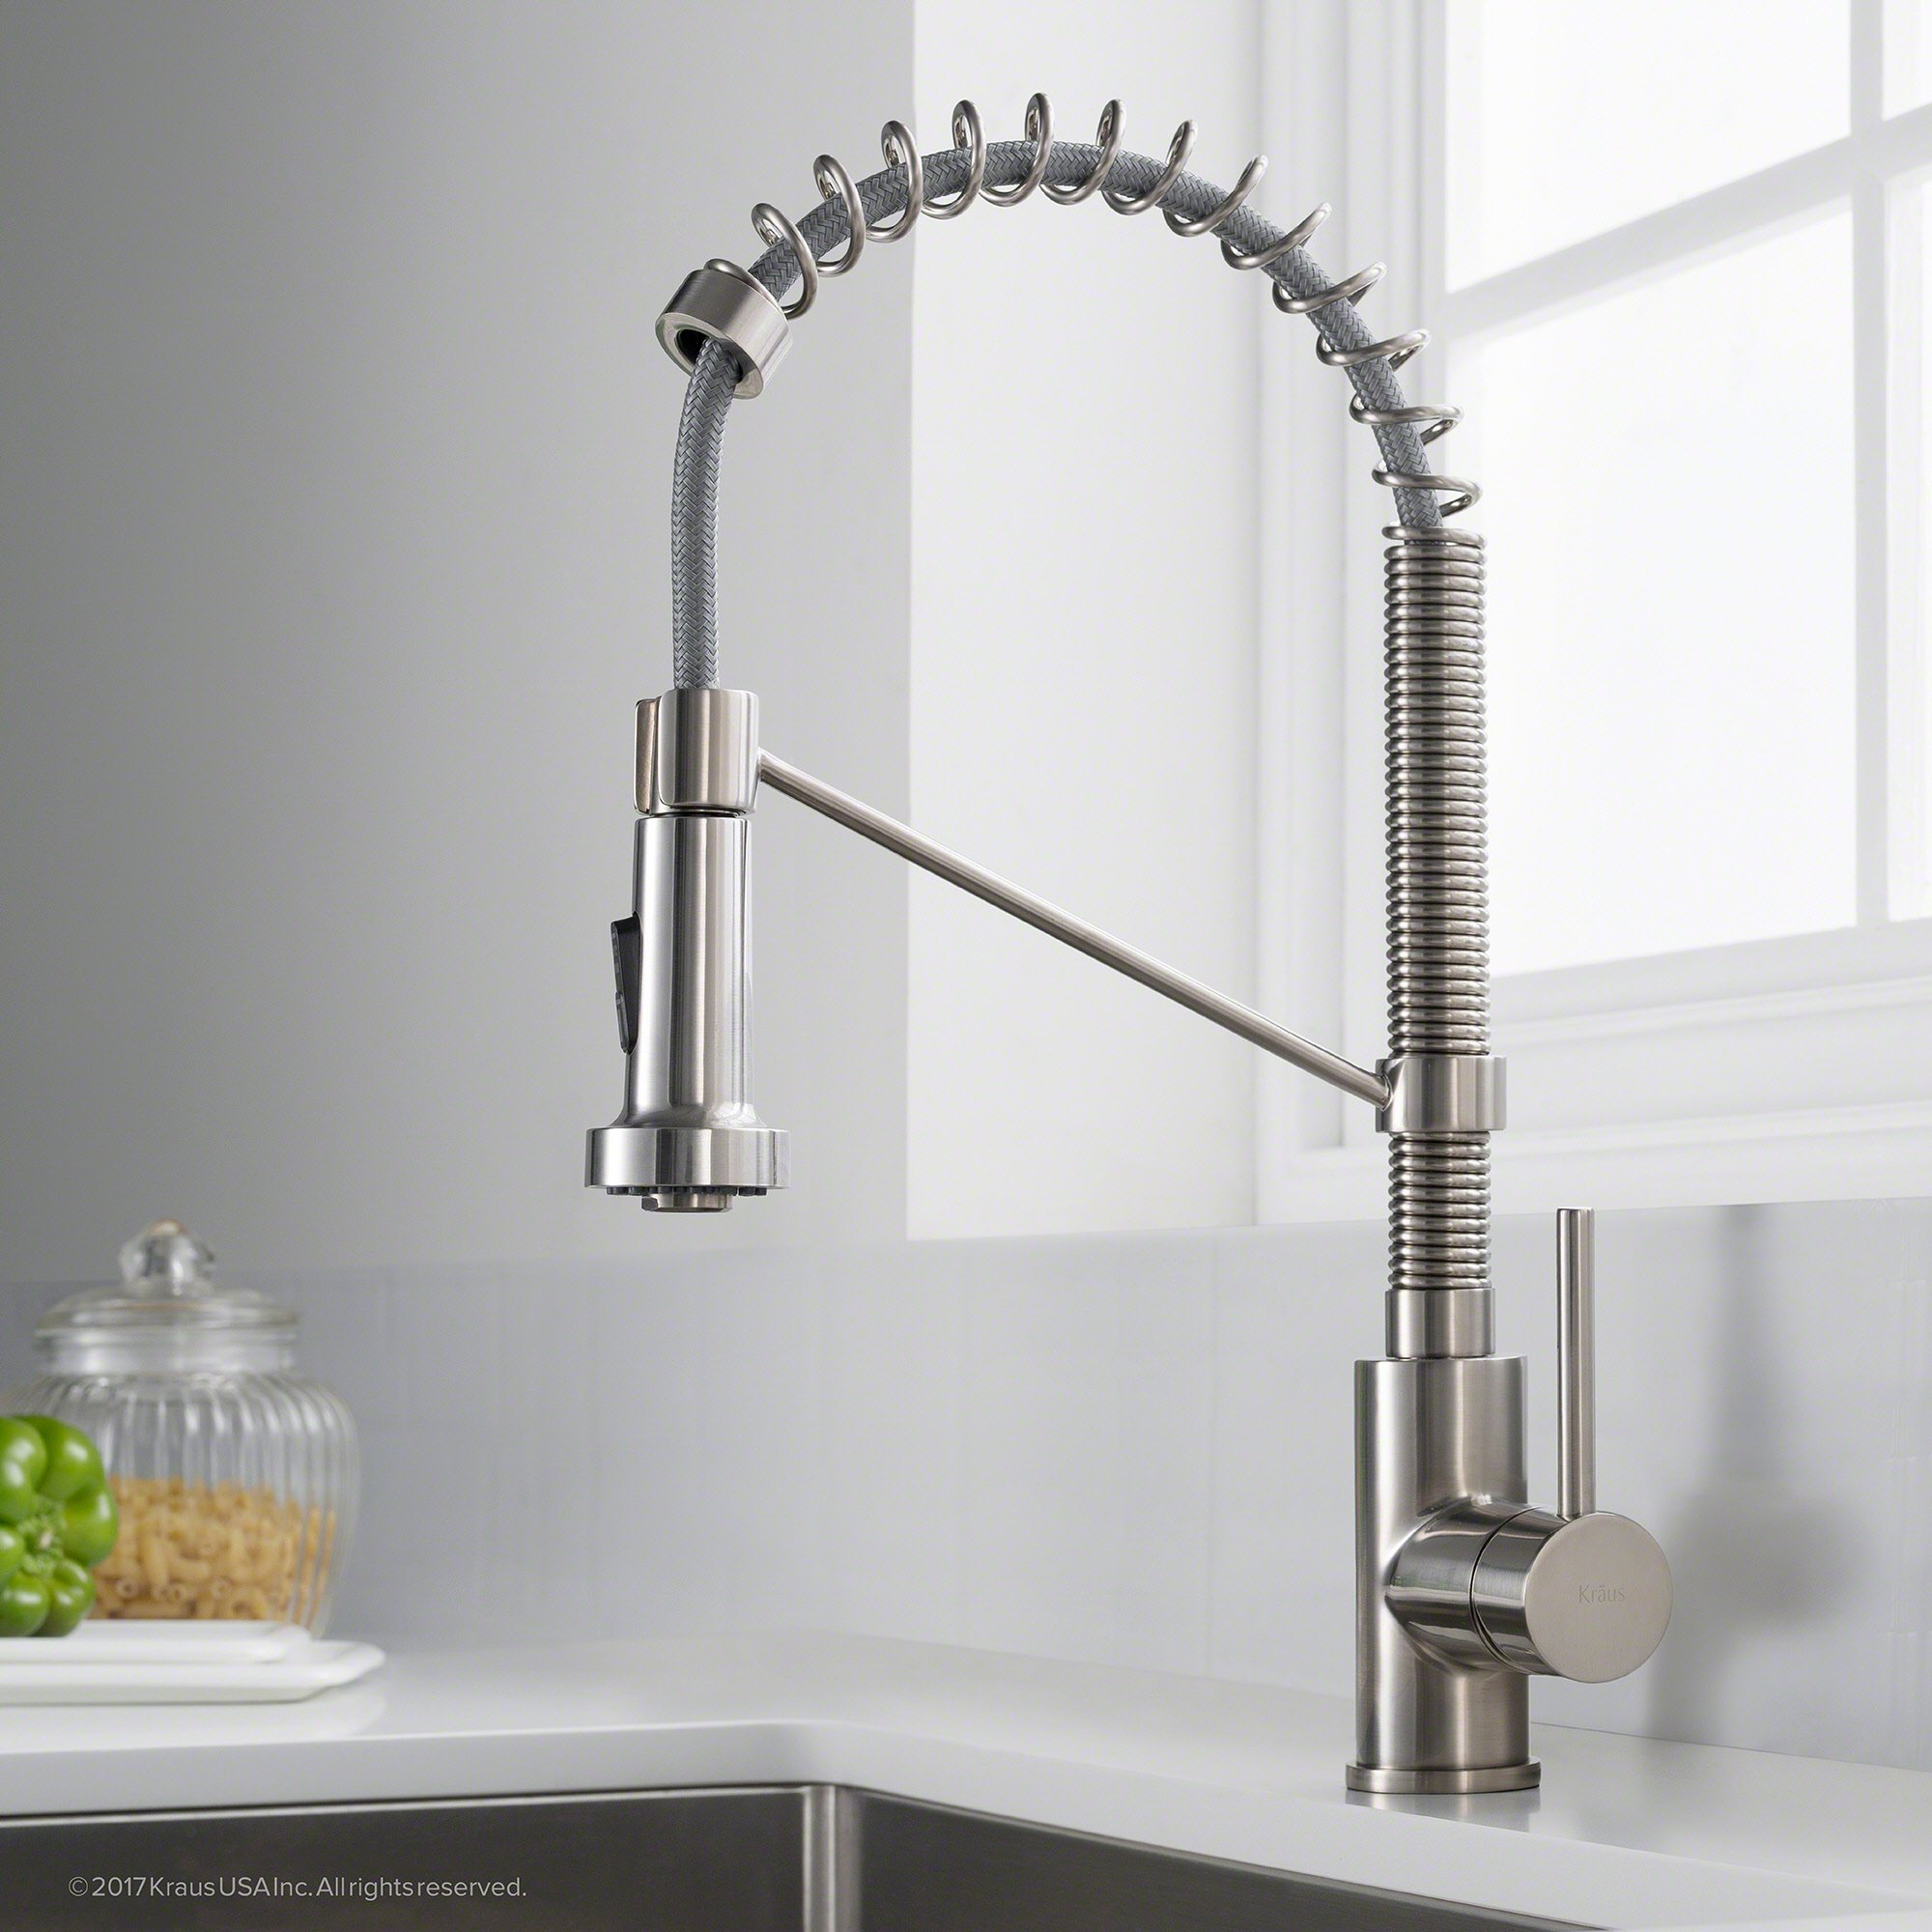 commercial a pre unit faucets your rinse must kitchen hose winsome single for inc units rins replacement faucet spray danze handle sprayer modern